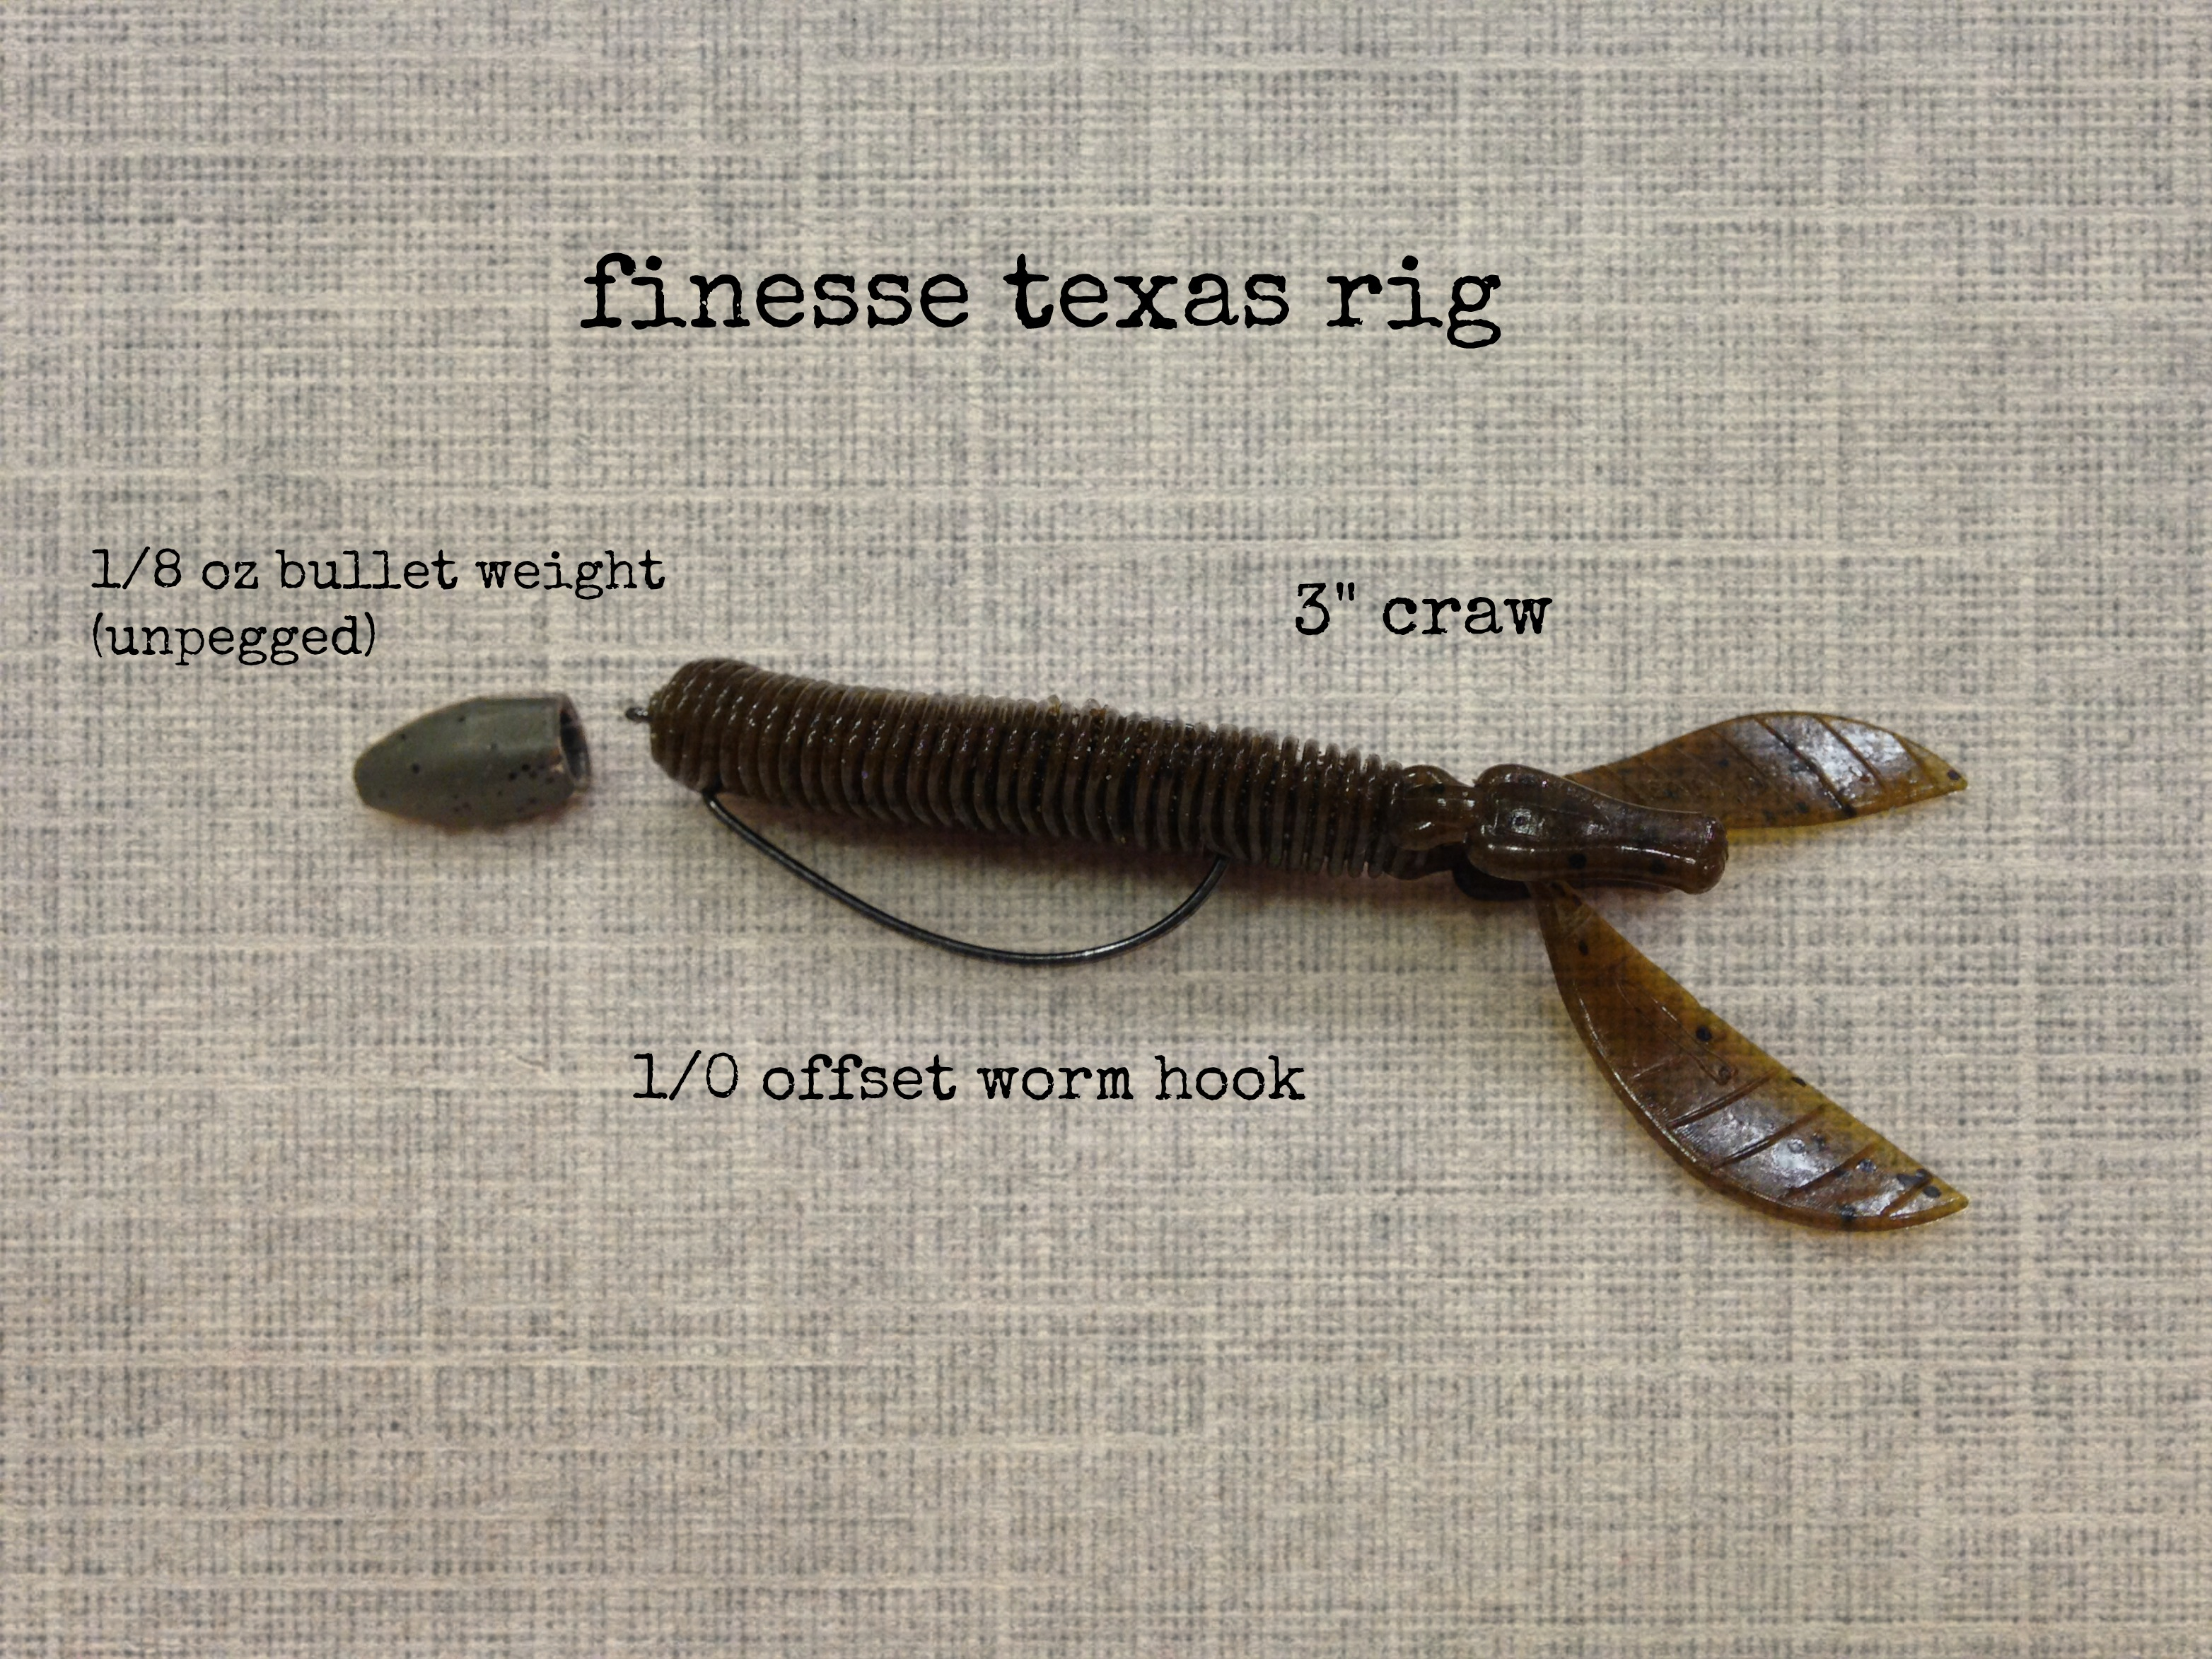 finesse texas rig